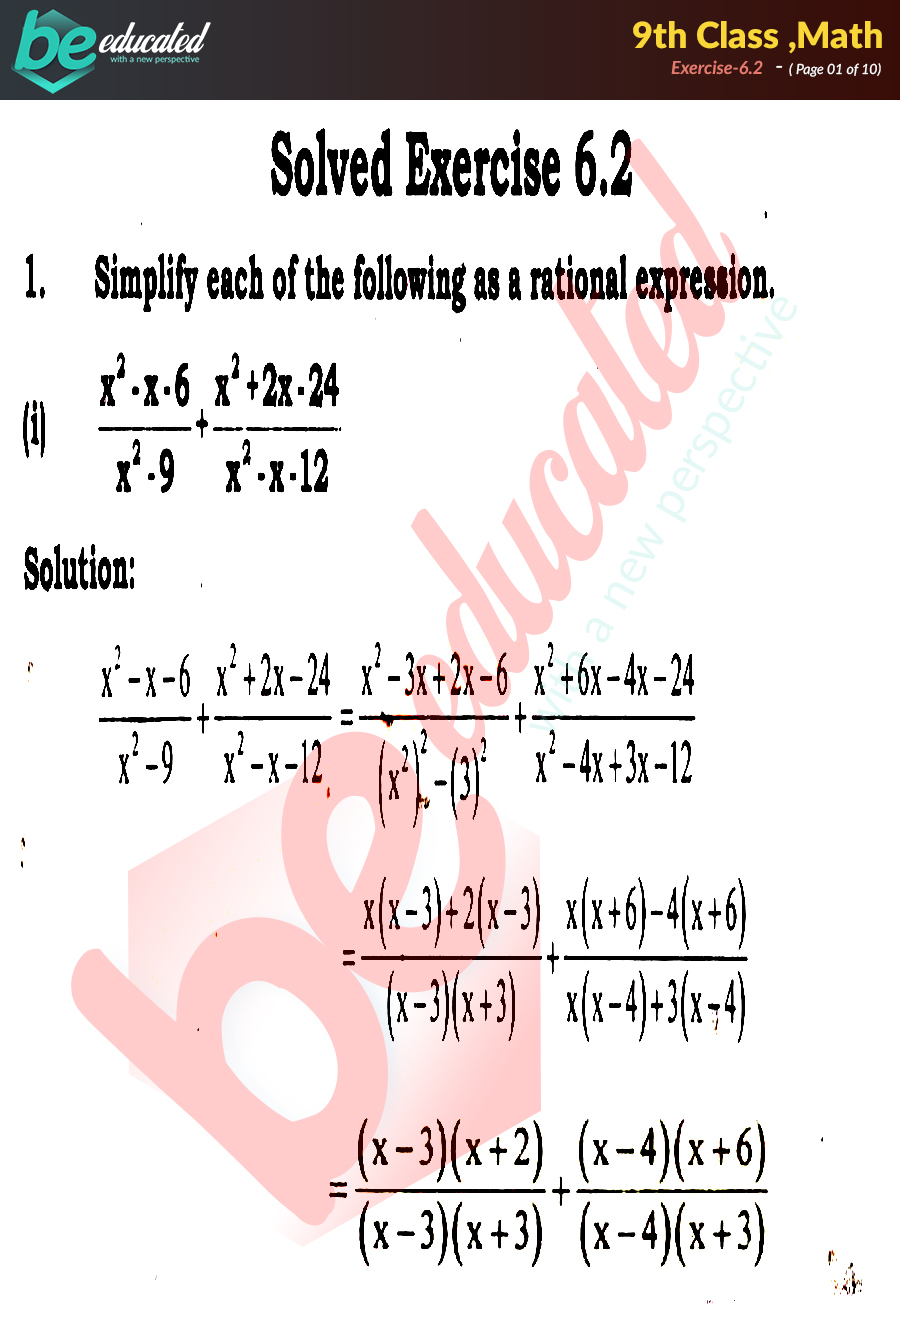 Exercise 6 2 Math 9th Class Notes - Matric Part 1 Notes